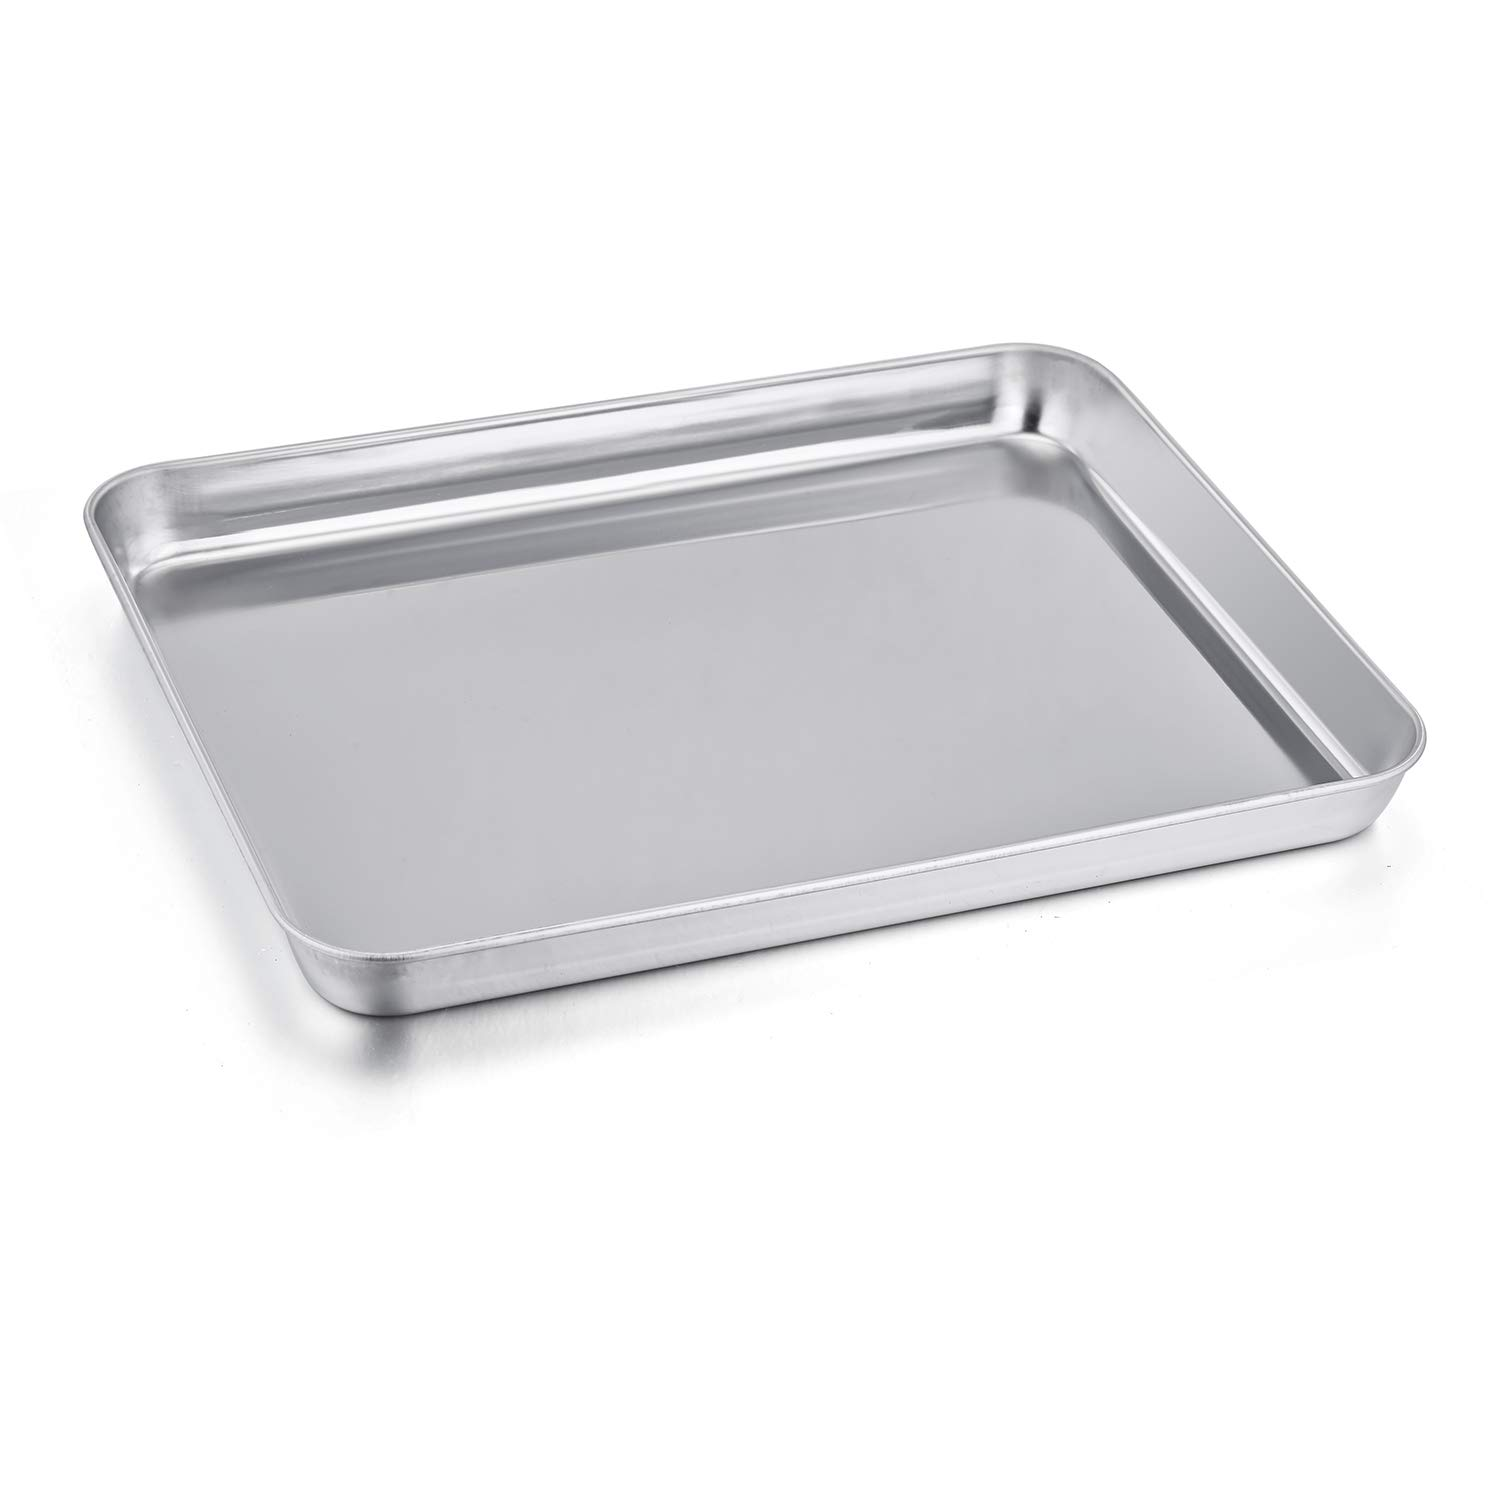 P&P CHEF Toaster Oven Pan, Stainless Steel Toaster Oven Tray Bakeware, Rectangle 12.5'' x 9.7'' x 1'', Non Toxic & Healthy, Mirror Finish & Easy Clean